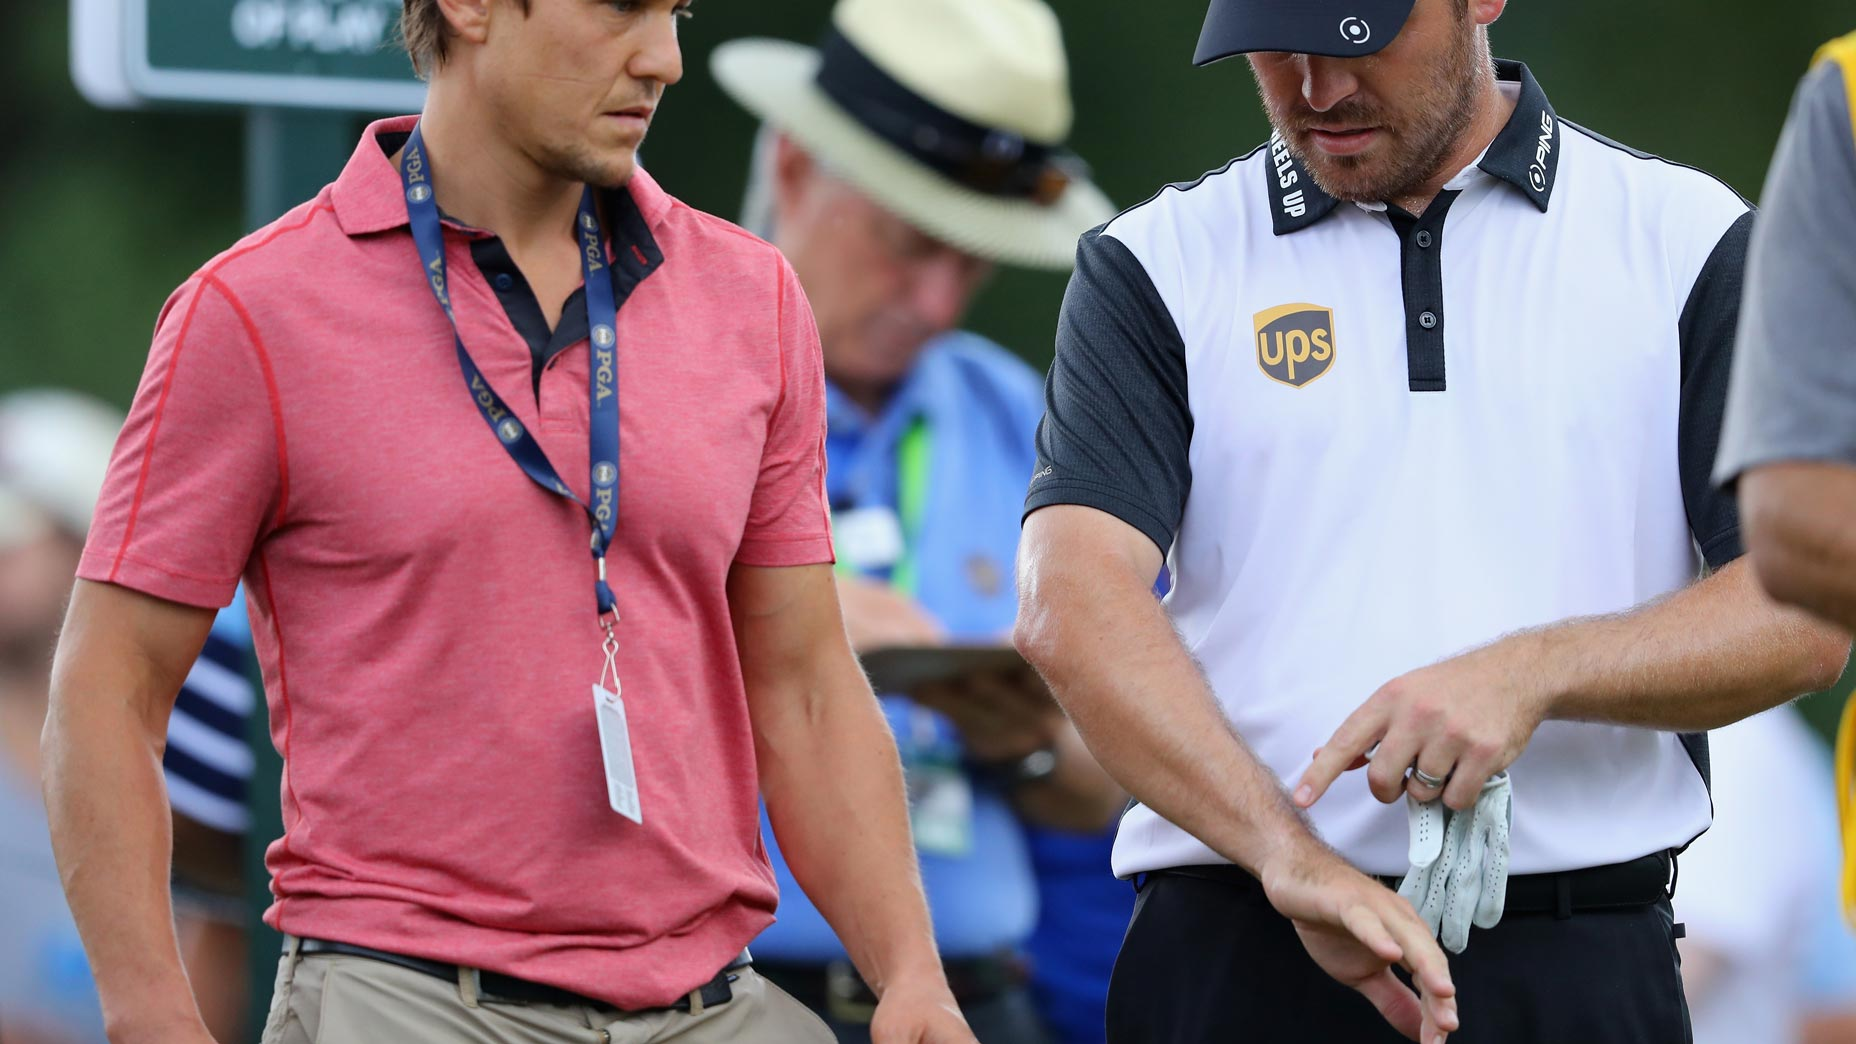 louis oosthuizen examines a hand injury